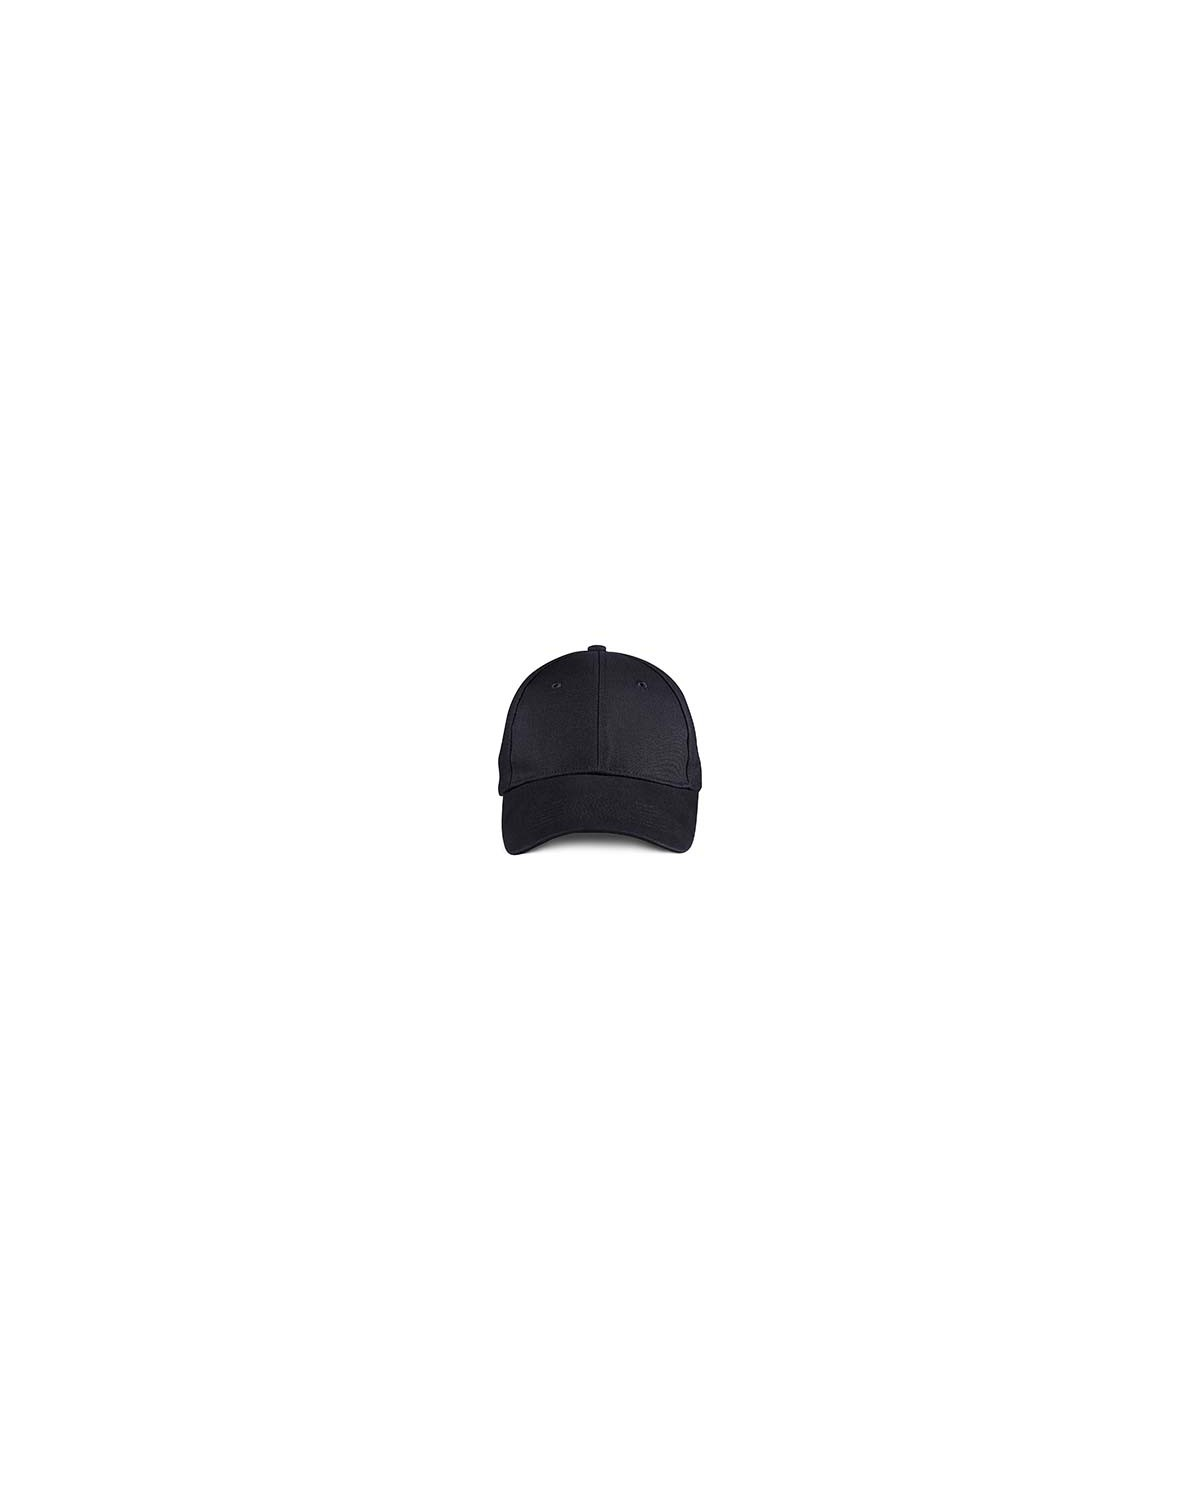 abd20127e0c Anvil 136 Solid Brushed Twill Cap. 136 51  View larger. Previous. 136 51   ...